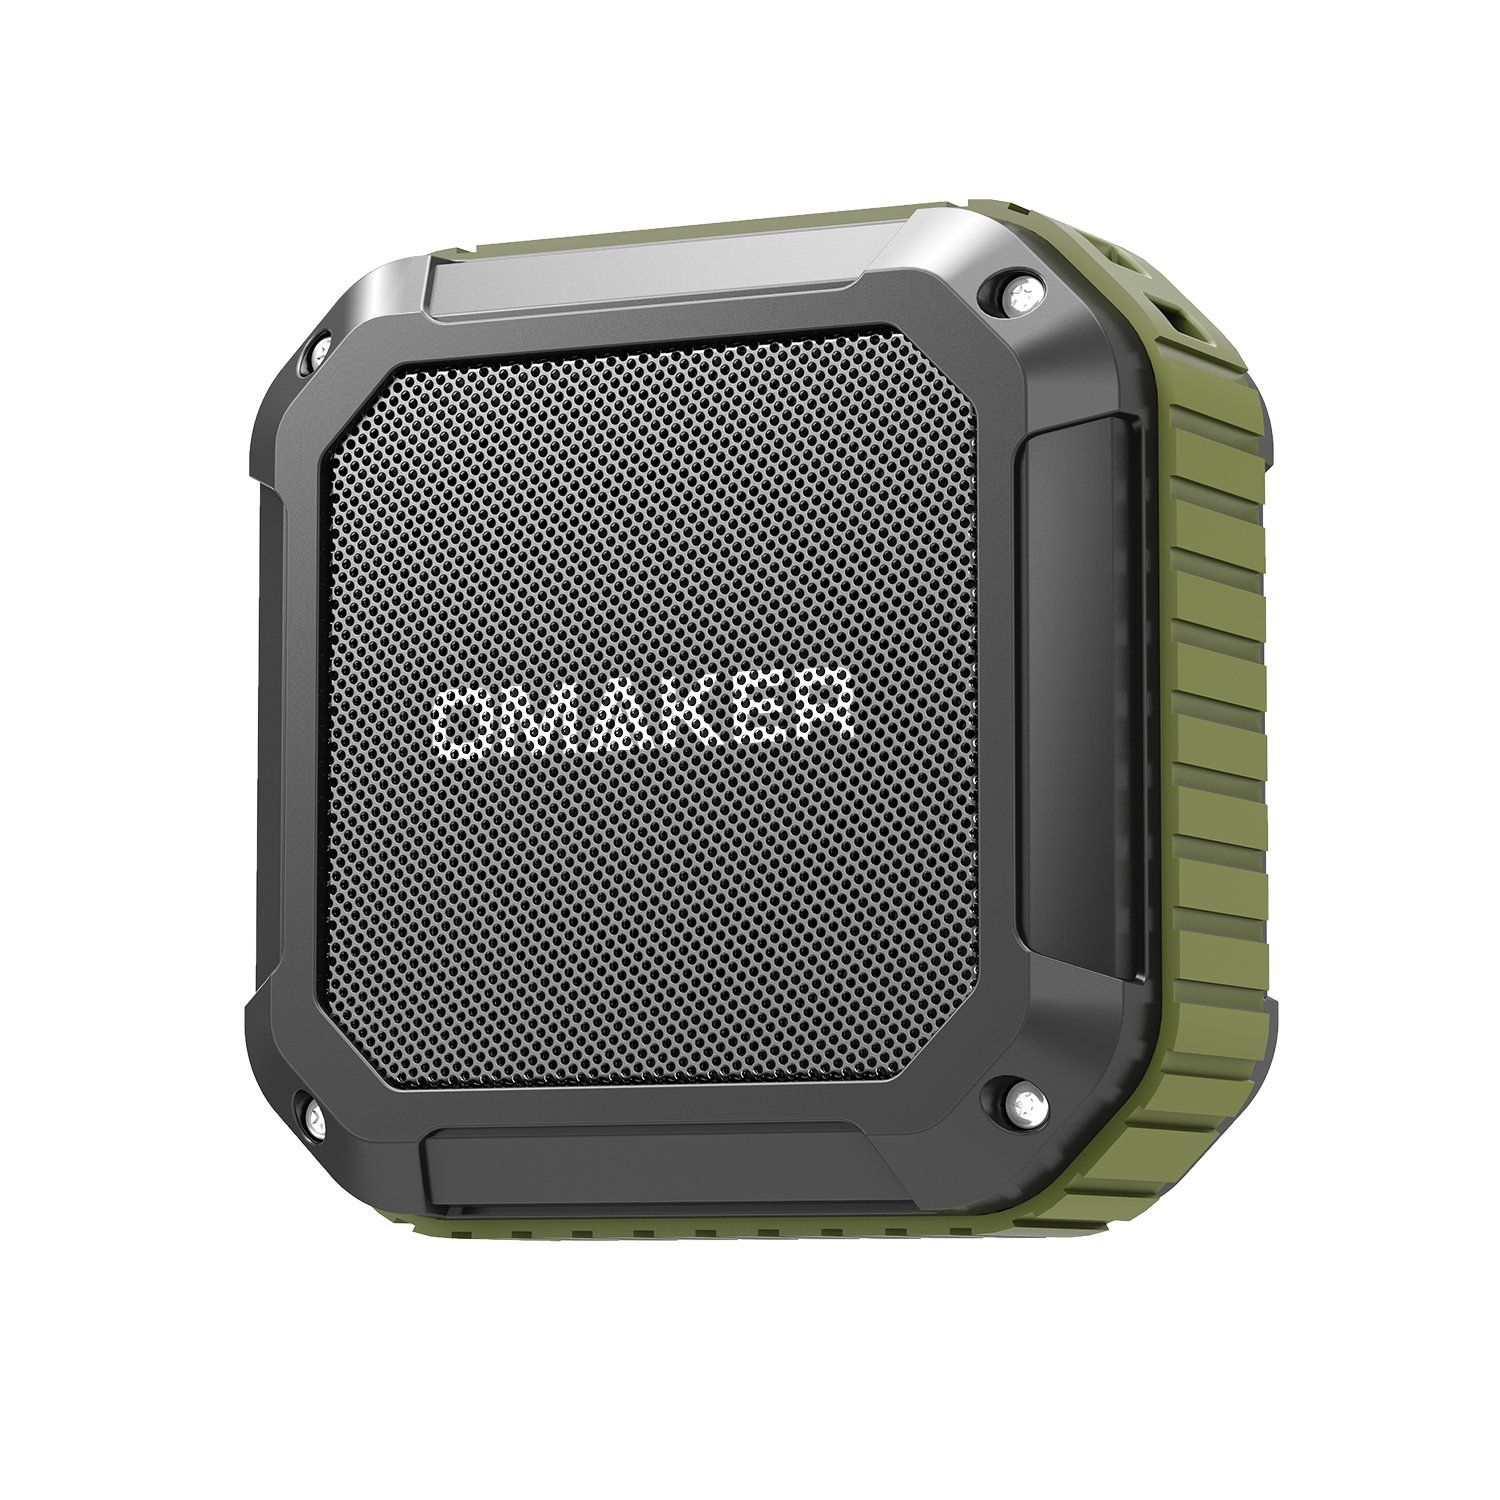 Omaker M110 Portable Bluetooth 110.10 Speaker with 10 Hour Playtime for